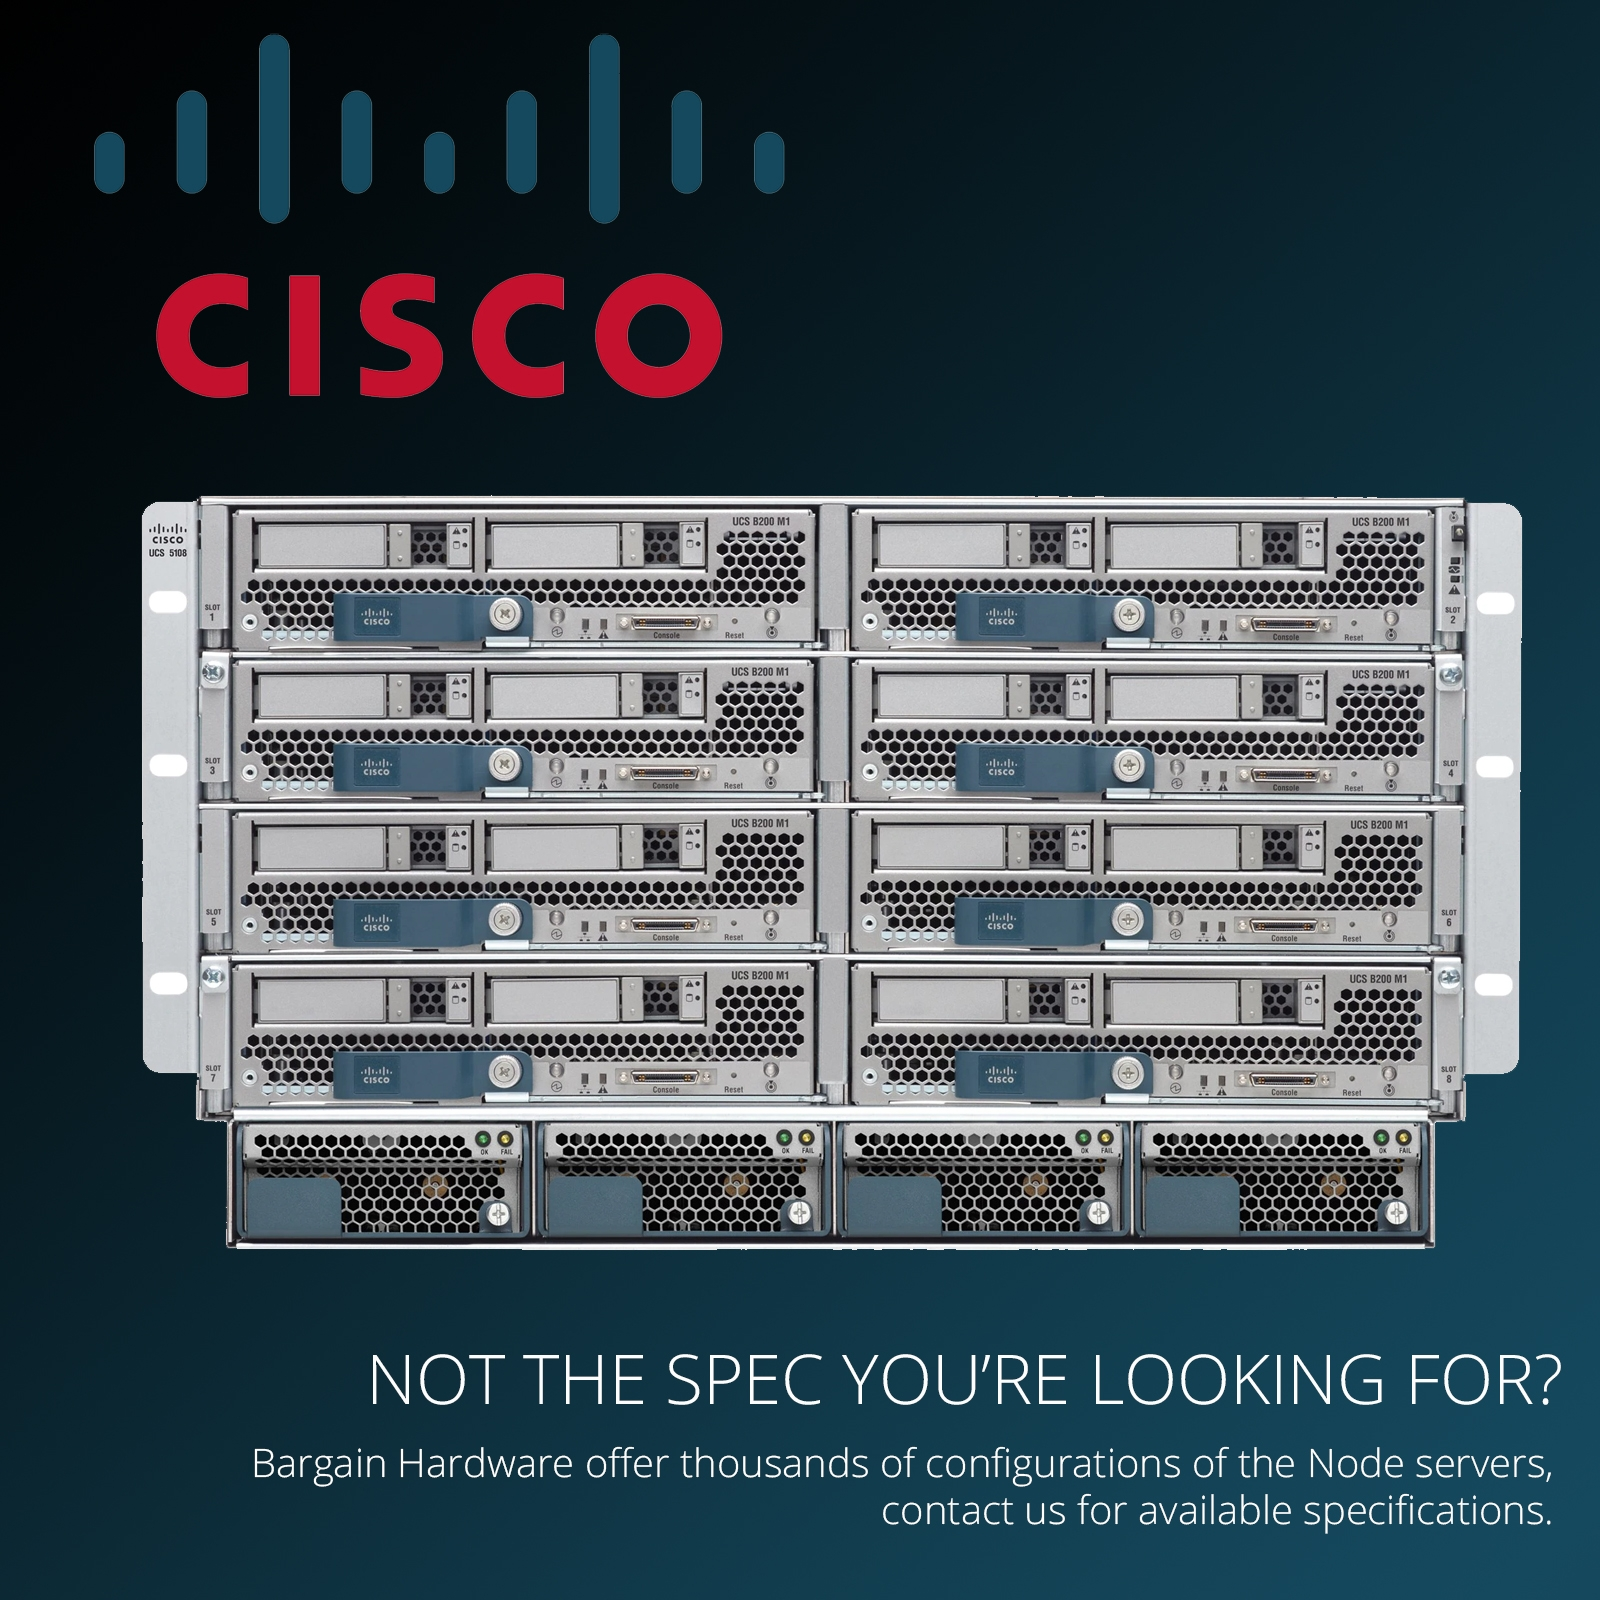 Details about Cisco UCS 5108 Node Server 8x B200-M3 Blades 16x E5-2670 Xeon  8-Core 768GB RAM